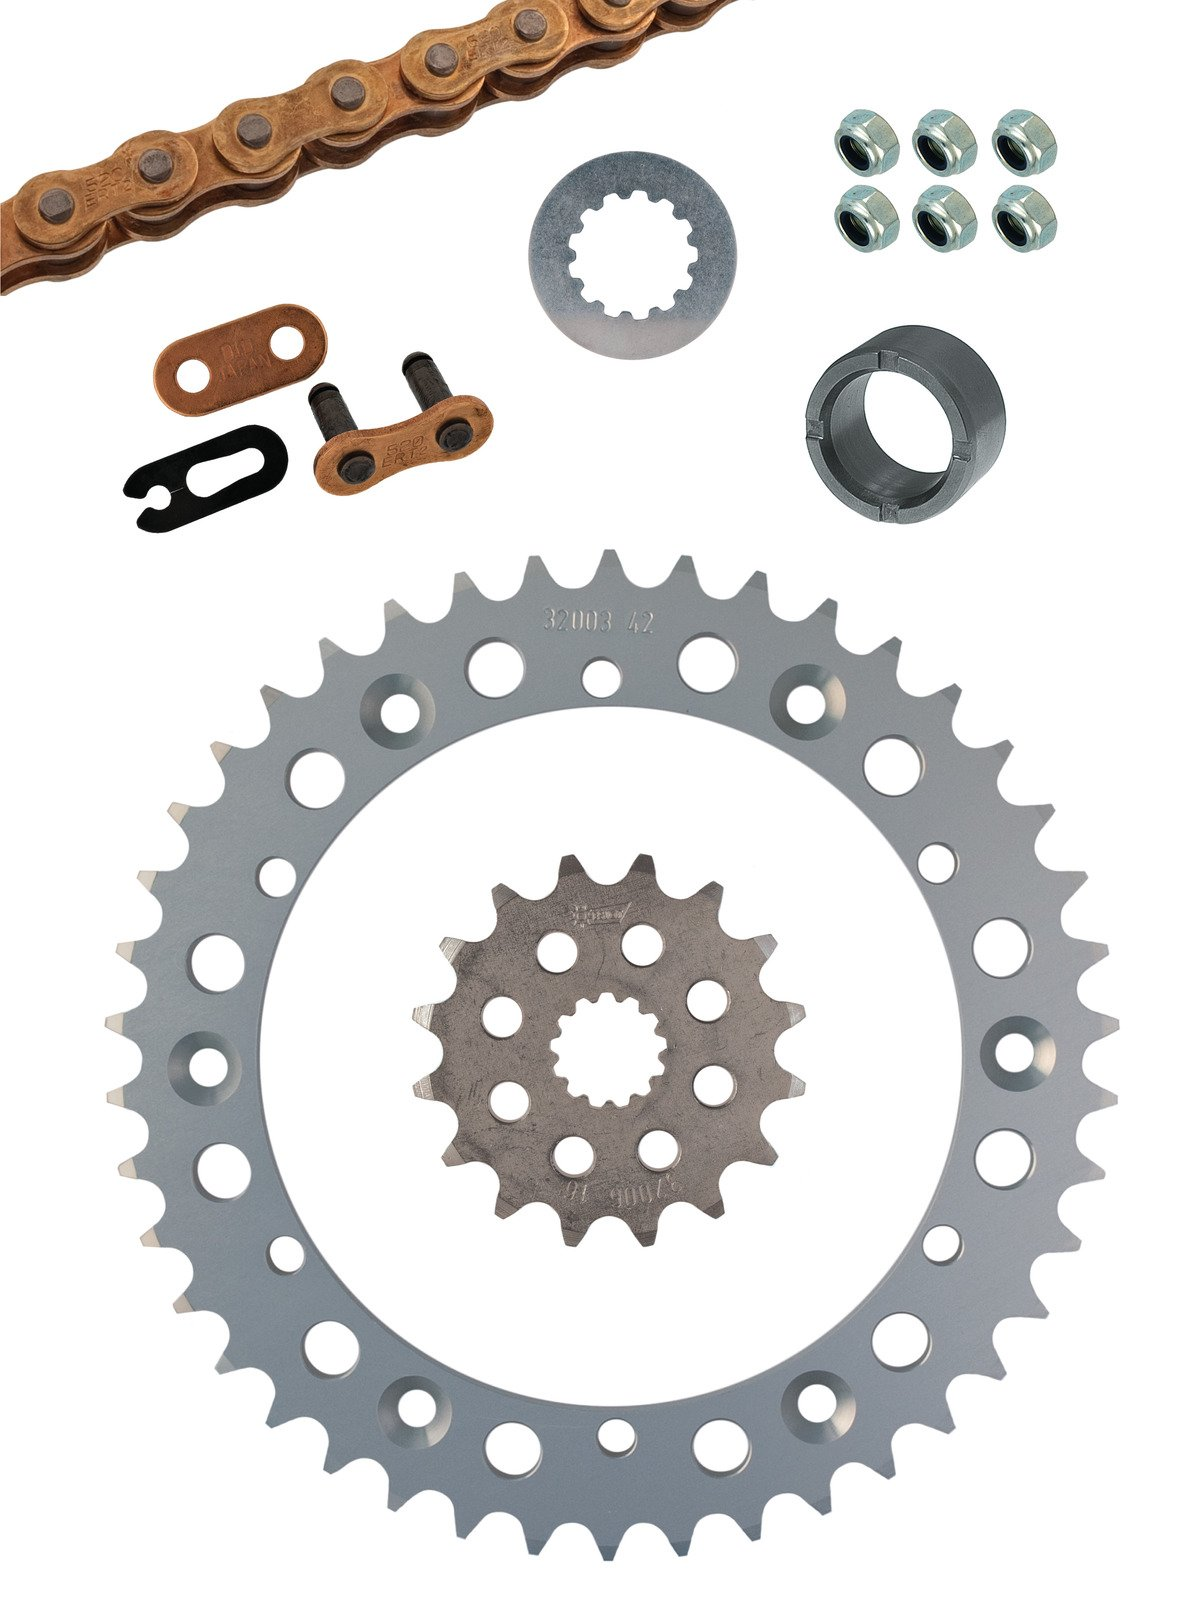 SR500 Racing Chain Kit complete with 16T Front Sprocket 42T Alu Rear Sprocket DID Racing Chain 520ERT3/102 Links + Clip Joint and Small Parts 91165